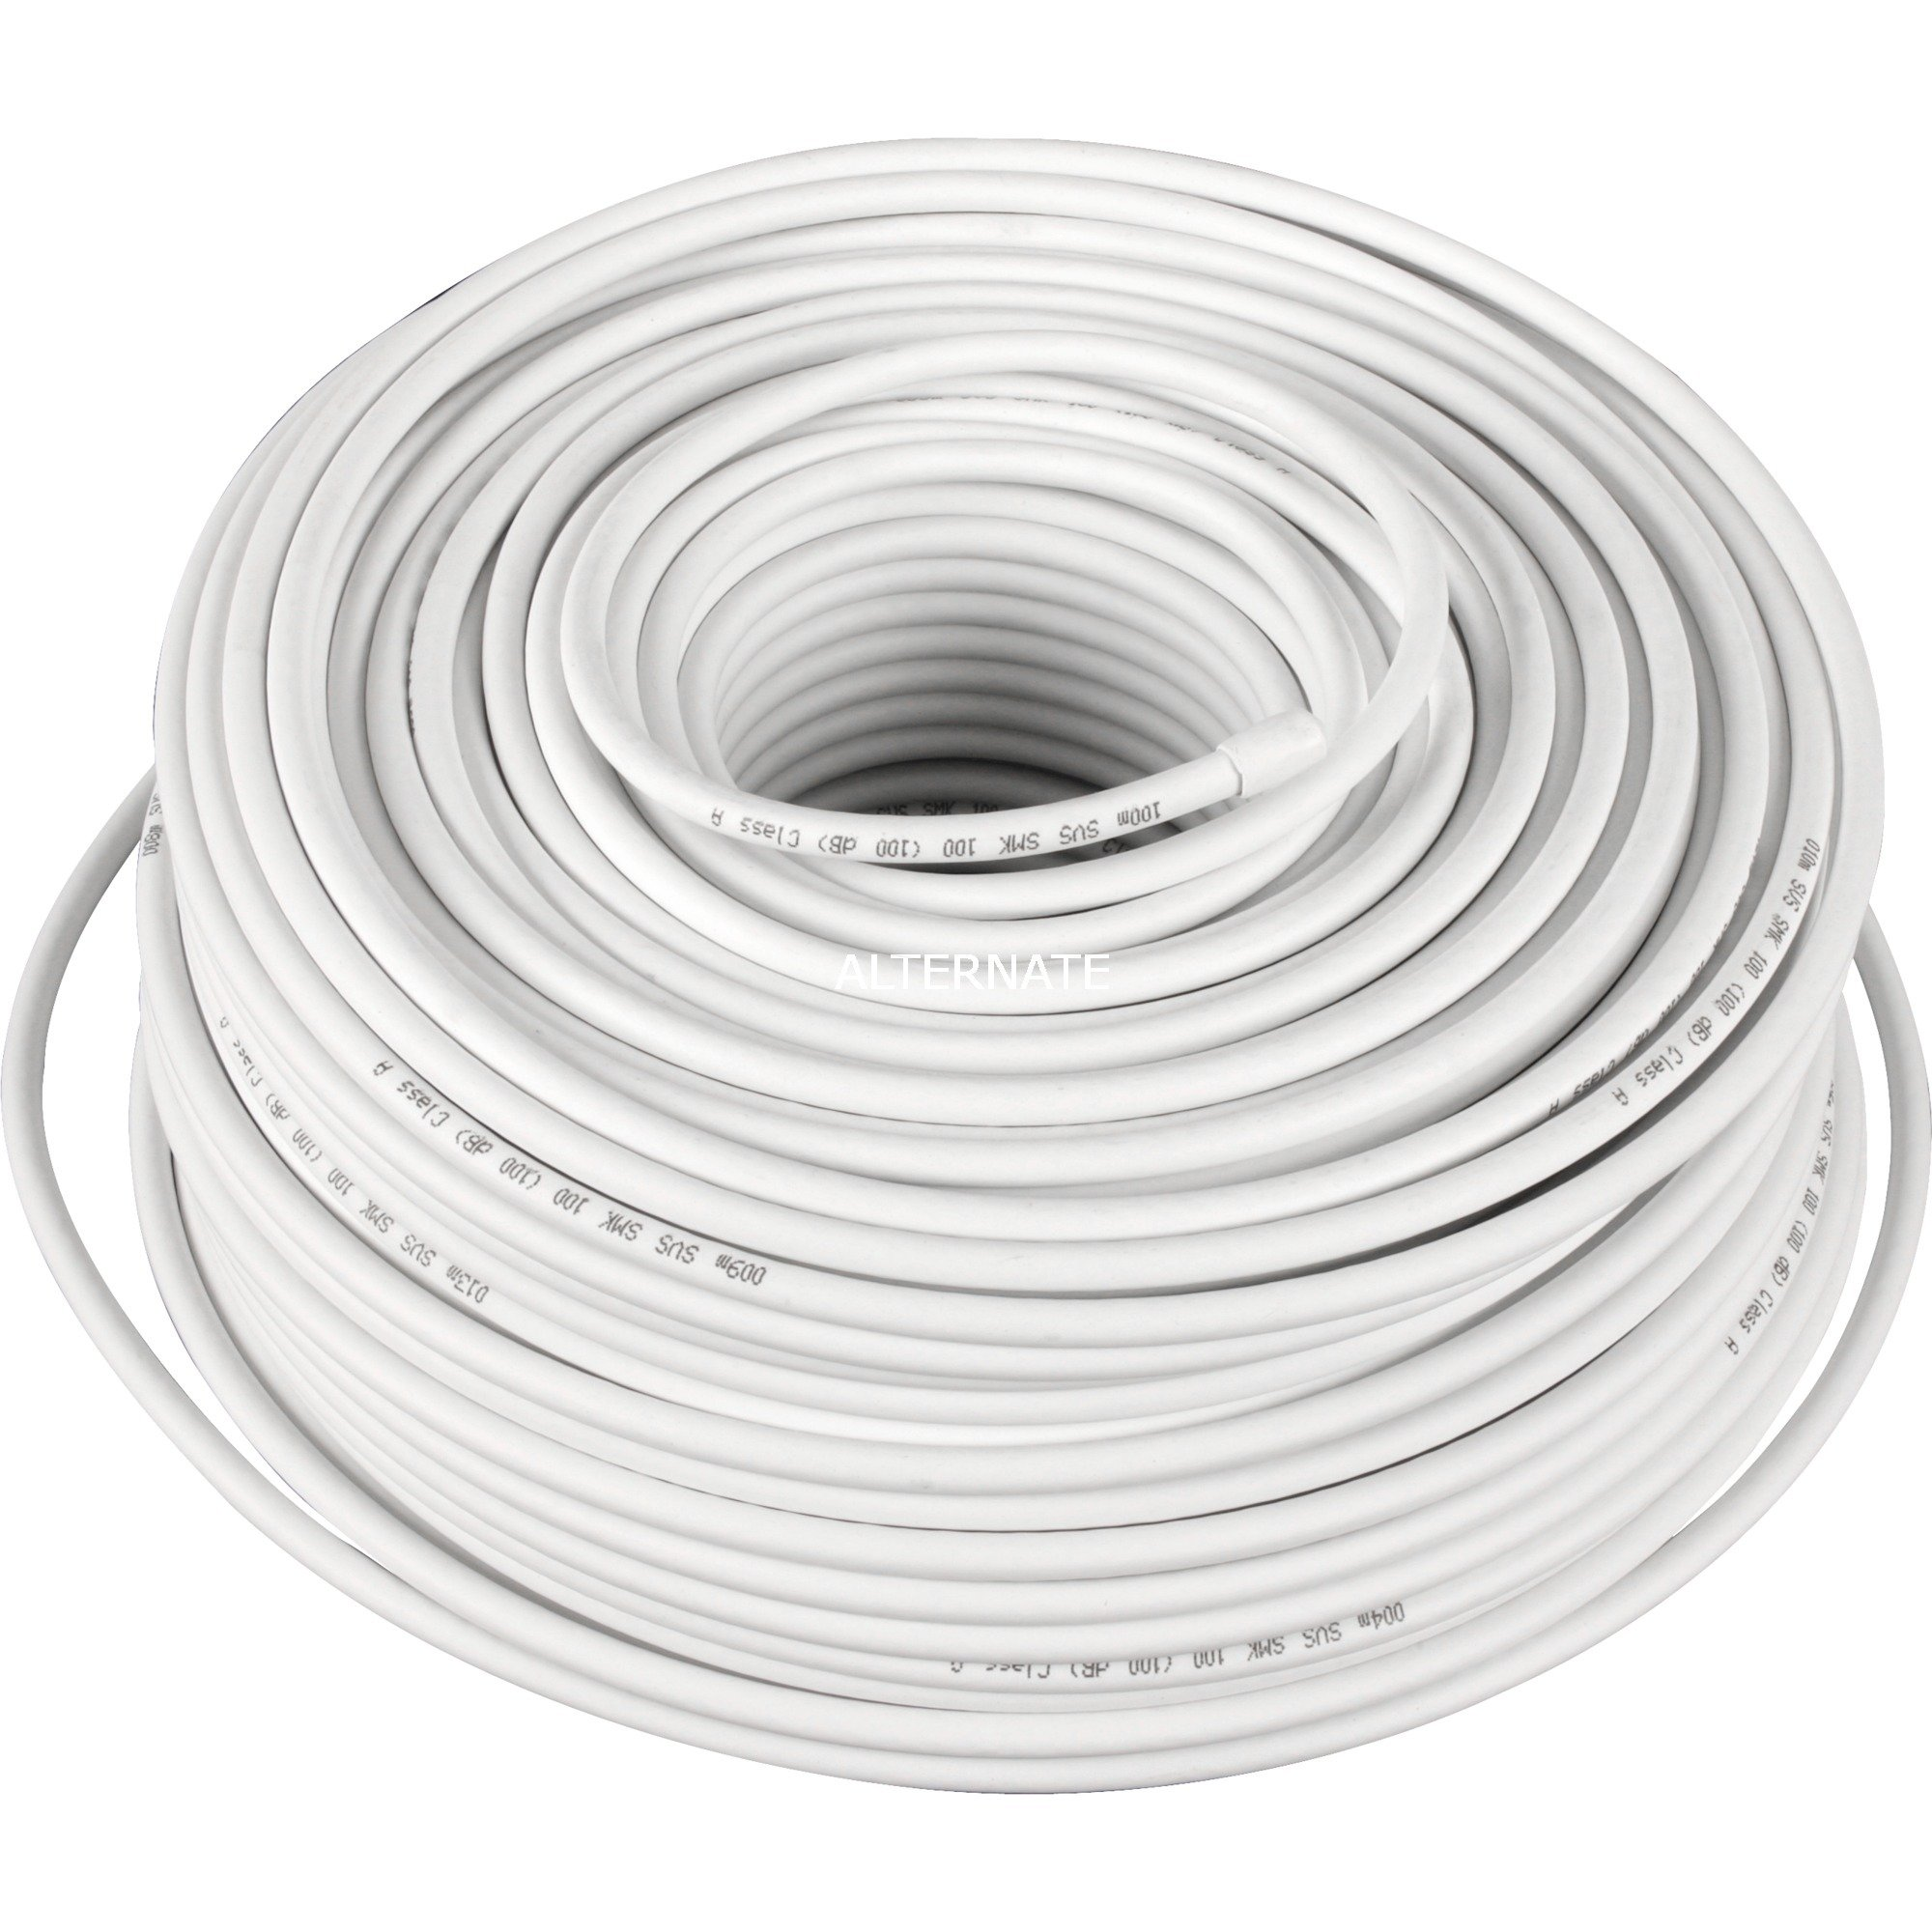 67096 cable coaxial 100 m Blanco